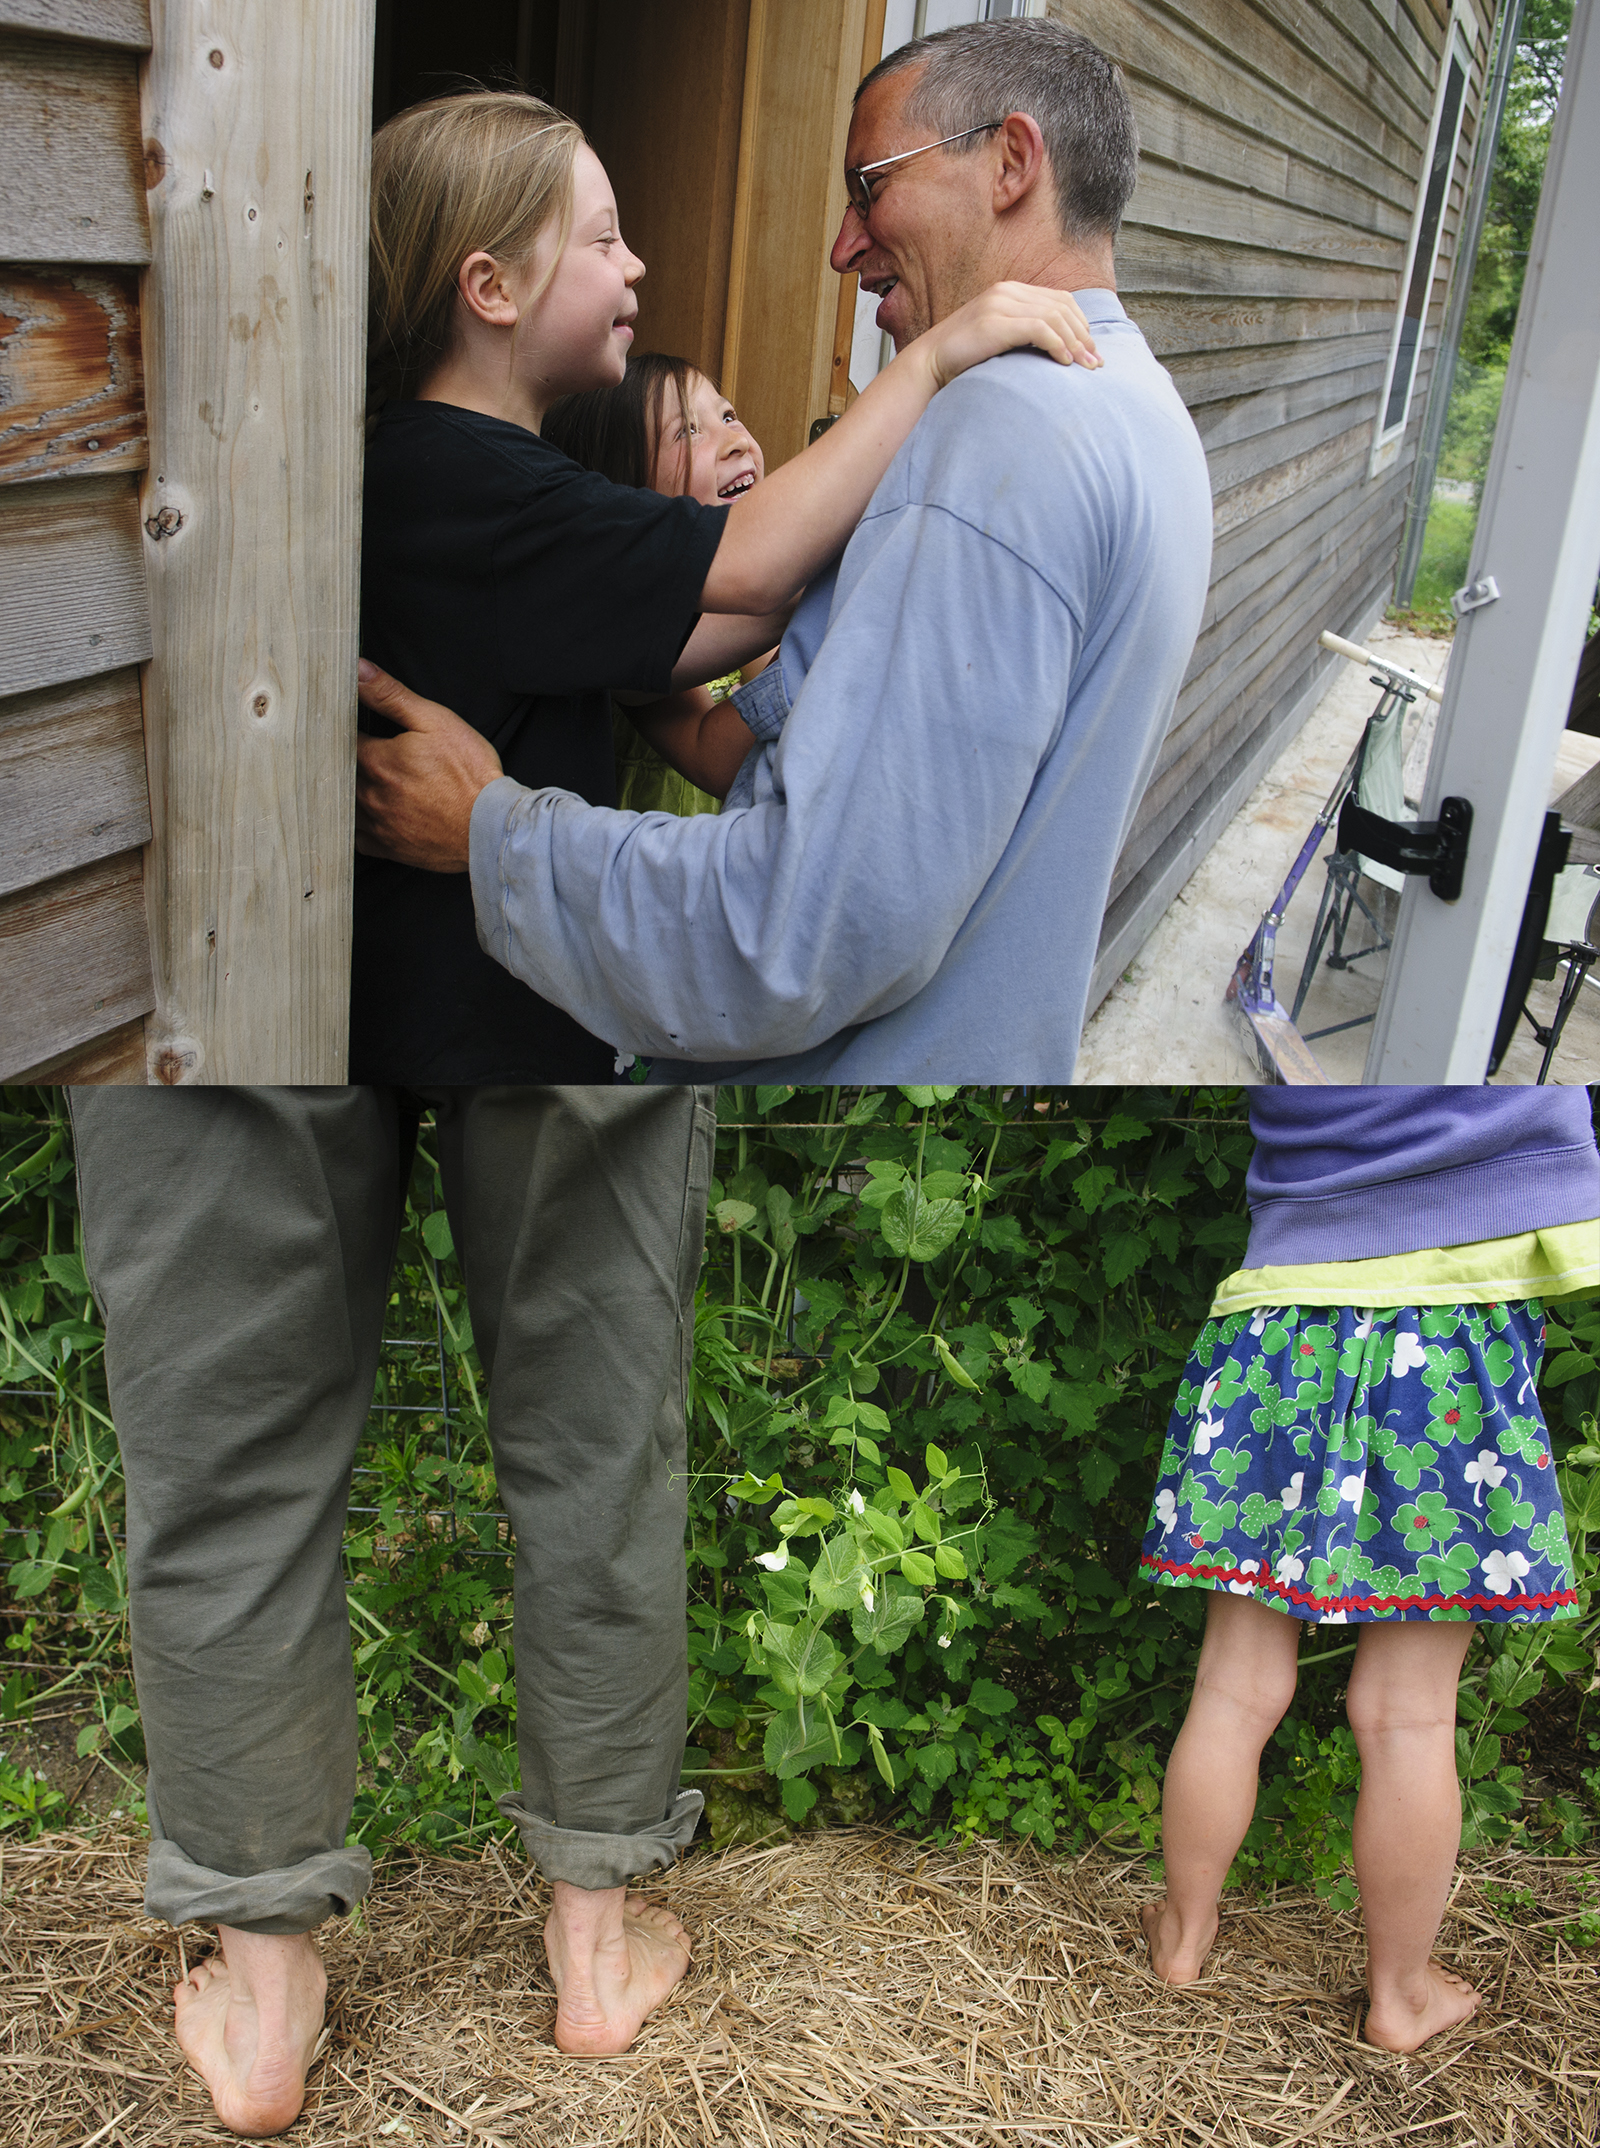 Top: Ed Wazer with daughters (L-R) Sena and Aiyana. Bottom: Shunning footware, Ed and Aiyana pick beans.